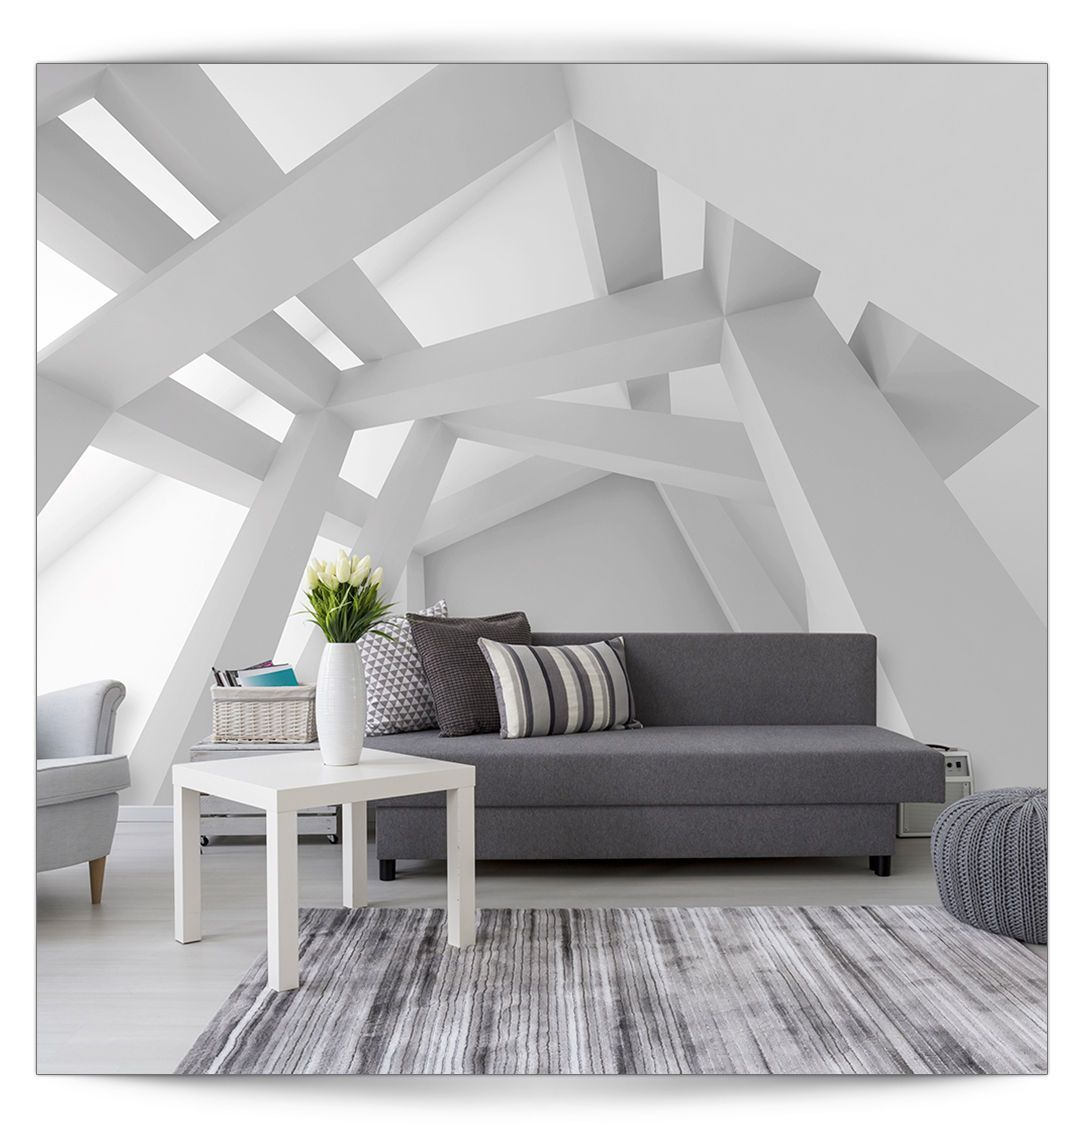 Vlies Fototapete 3d Effect Tapete Tapeten Schlafzimmer 3d Tapete Schlafzimmer Fototapete Tapeten E In 2020 Wallpaper Living Room Home Wallpaper Living Room Decor